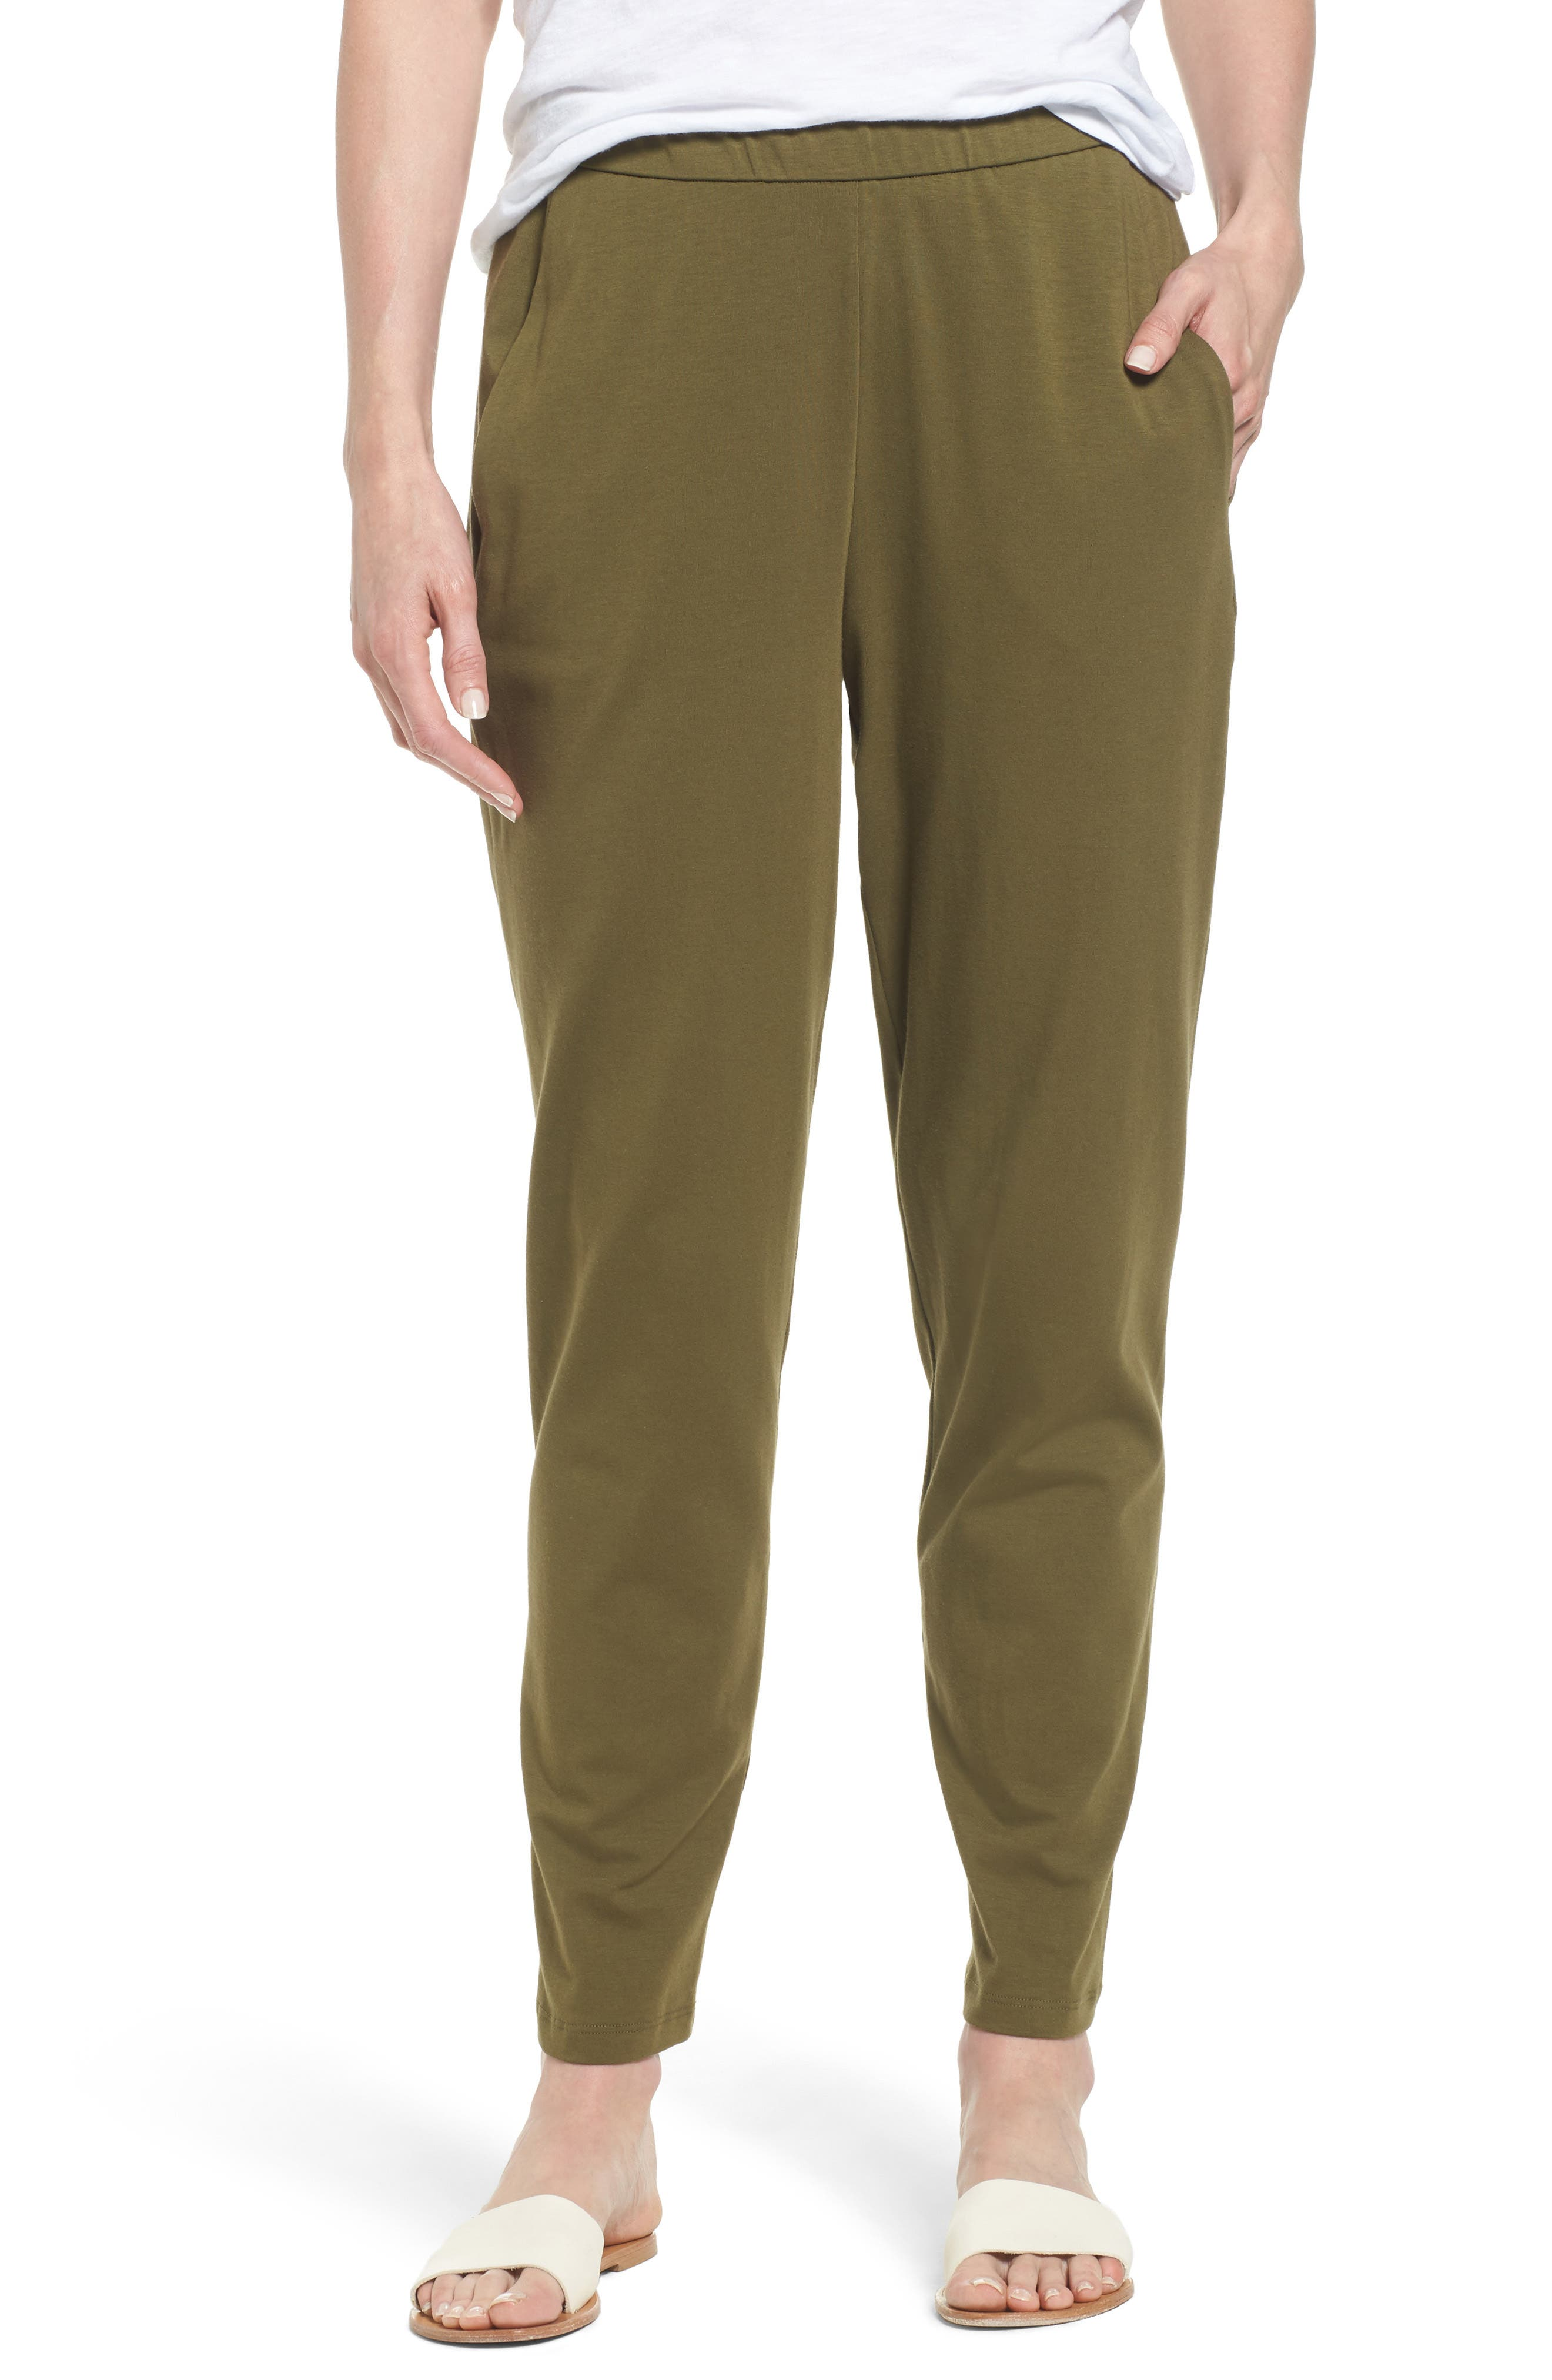 Alternate Image 1 Selected - Eileen Fisher Stretch Organic Cotton Slim Slouchy Ankle Pants (Regular & Petite)